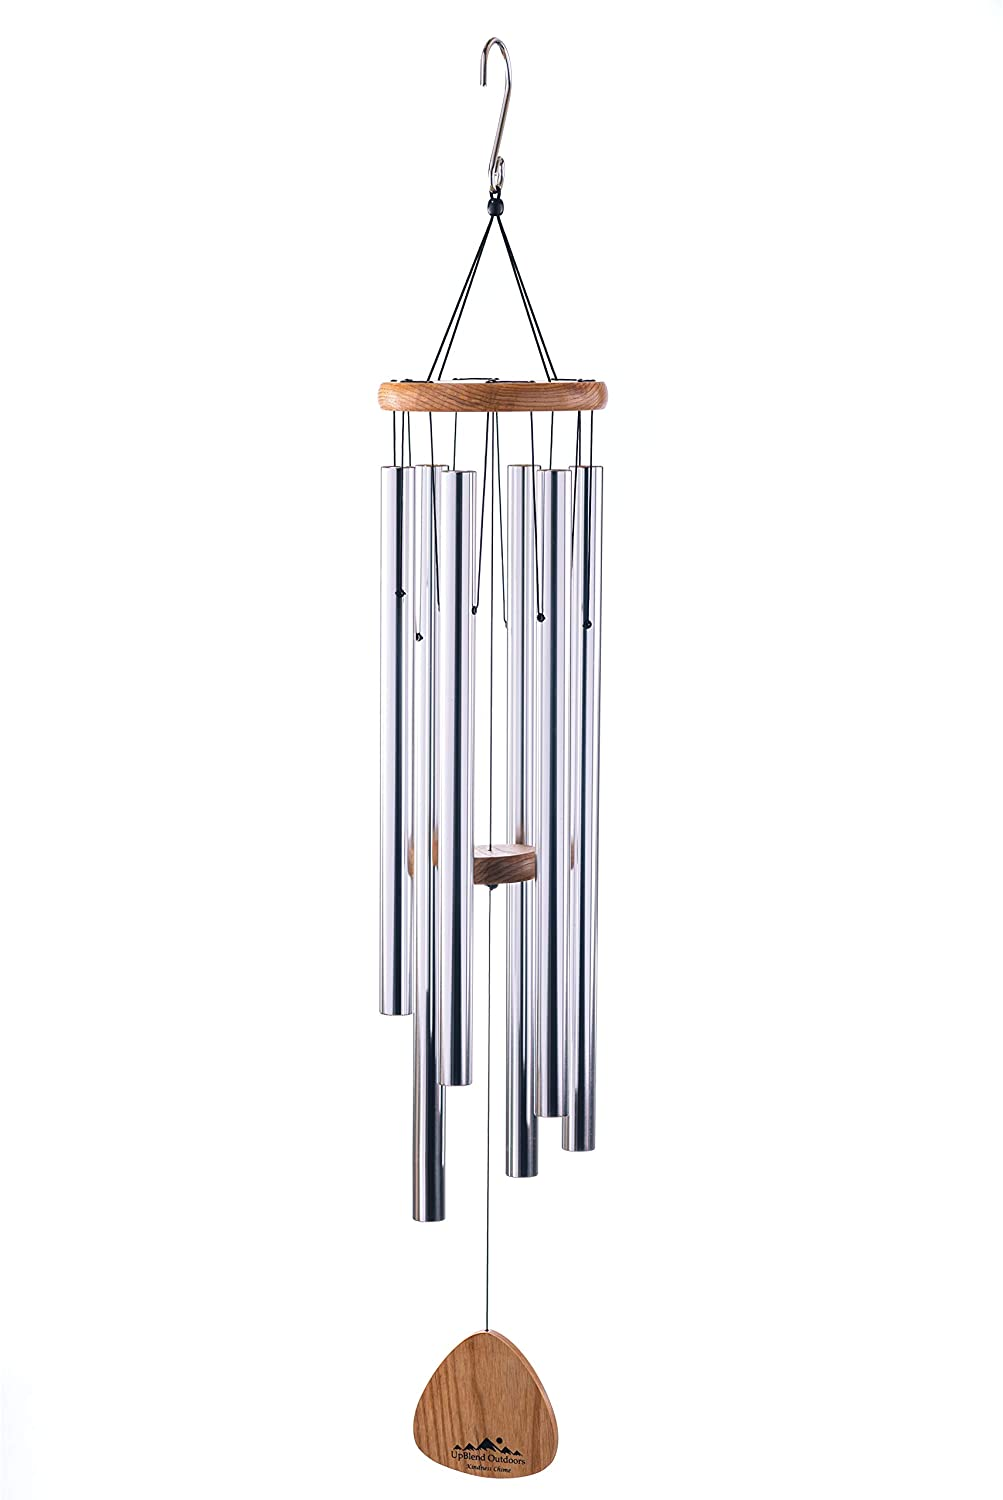 UpBlend Outdoors Wind Chimes for People who Like Their Neighbors 2 - an Amazing Addition to a Patio, Porch, Garden, or Backyard - 41